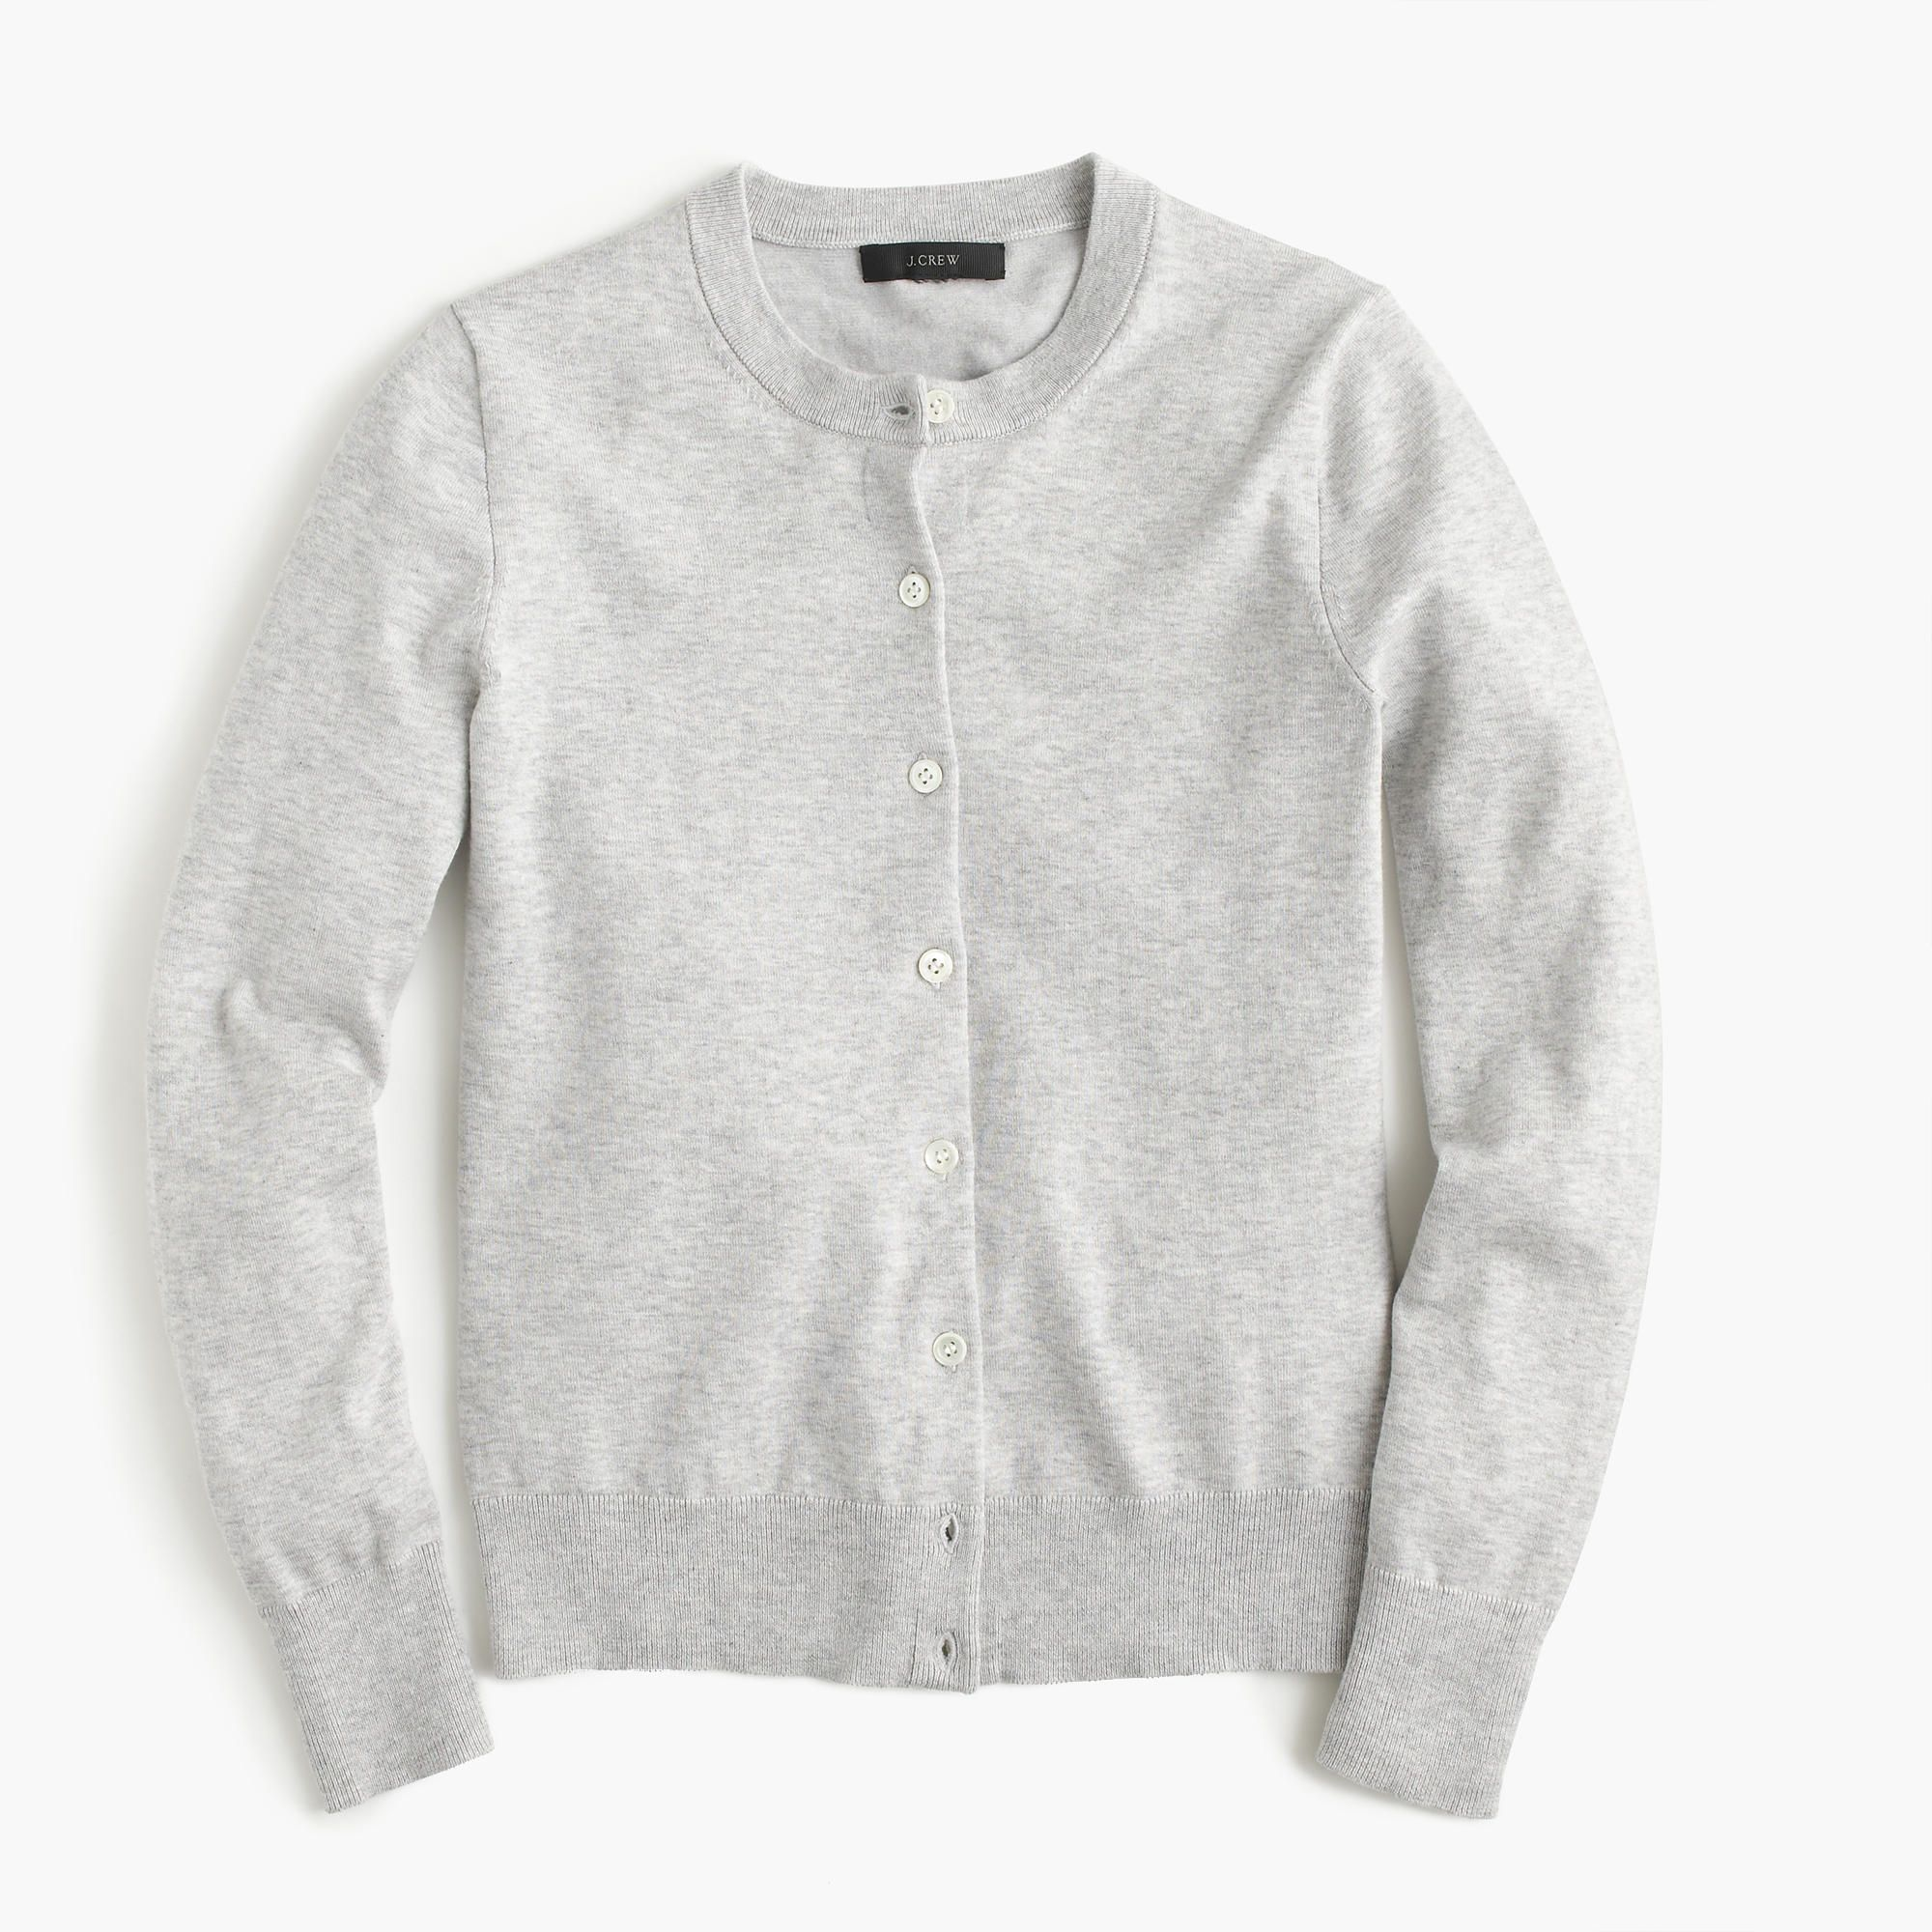 Shop the Cotton Jackie Cardigan Sweater at JCrew.com and see our ...